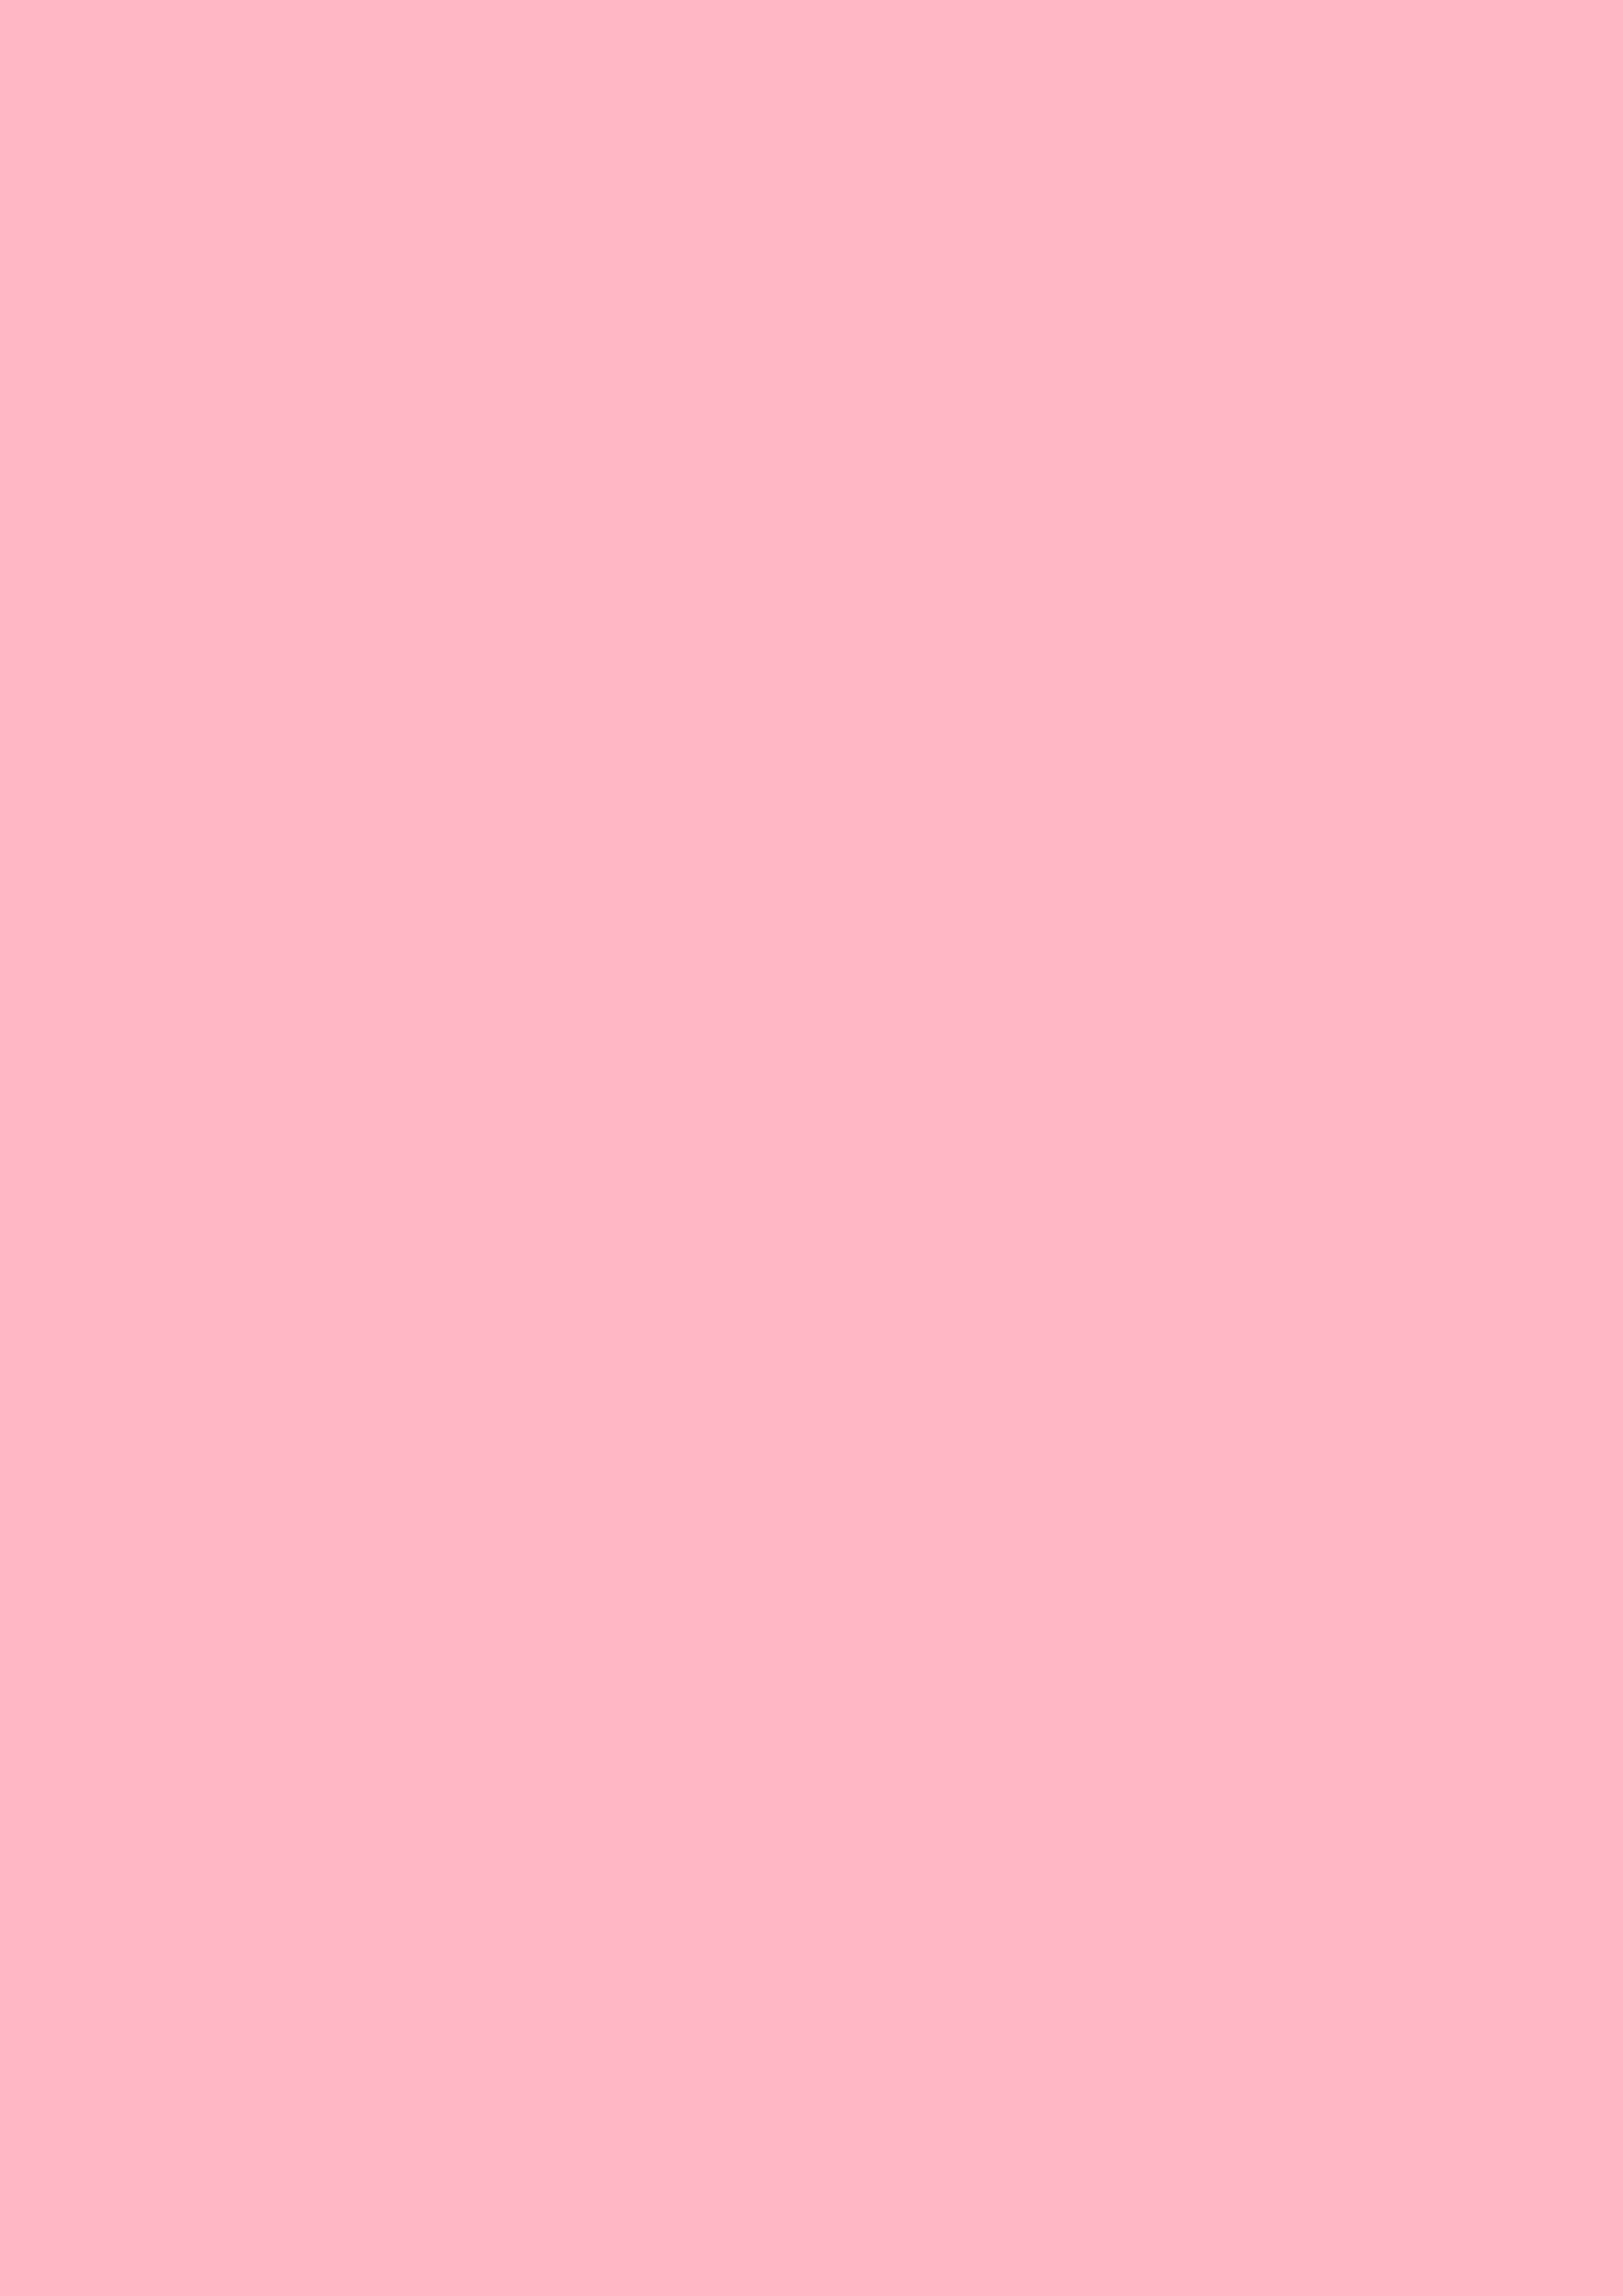 2480x3508 Cherry Blossom Pink Solid Color Background